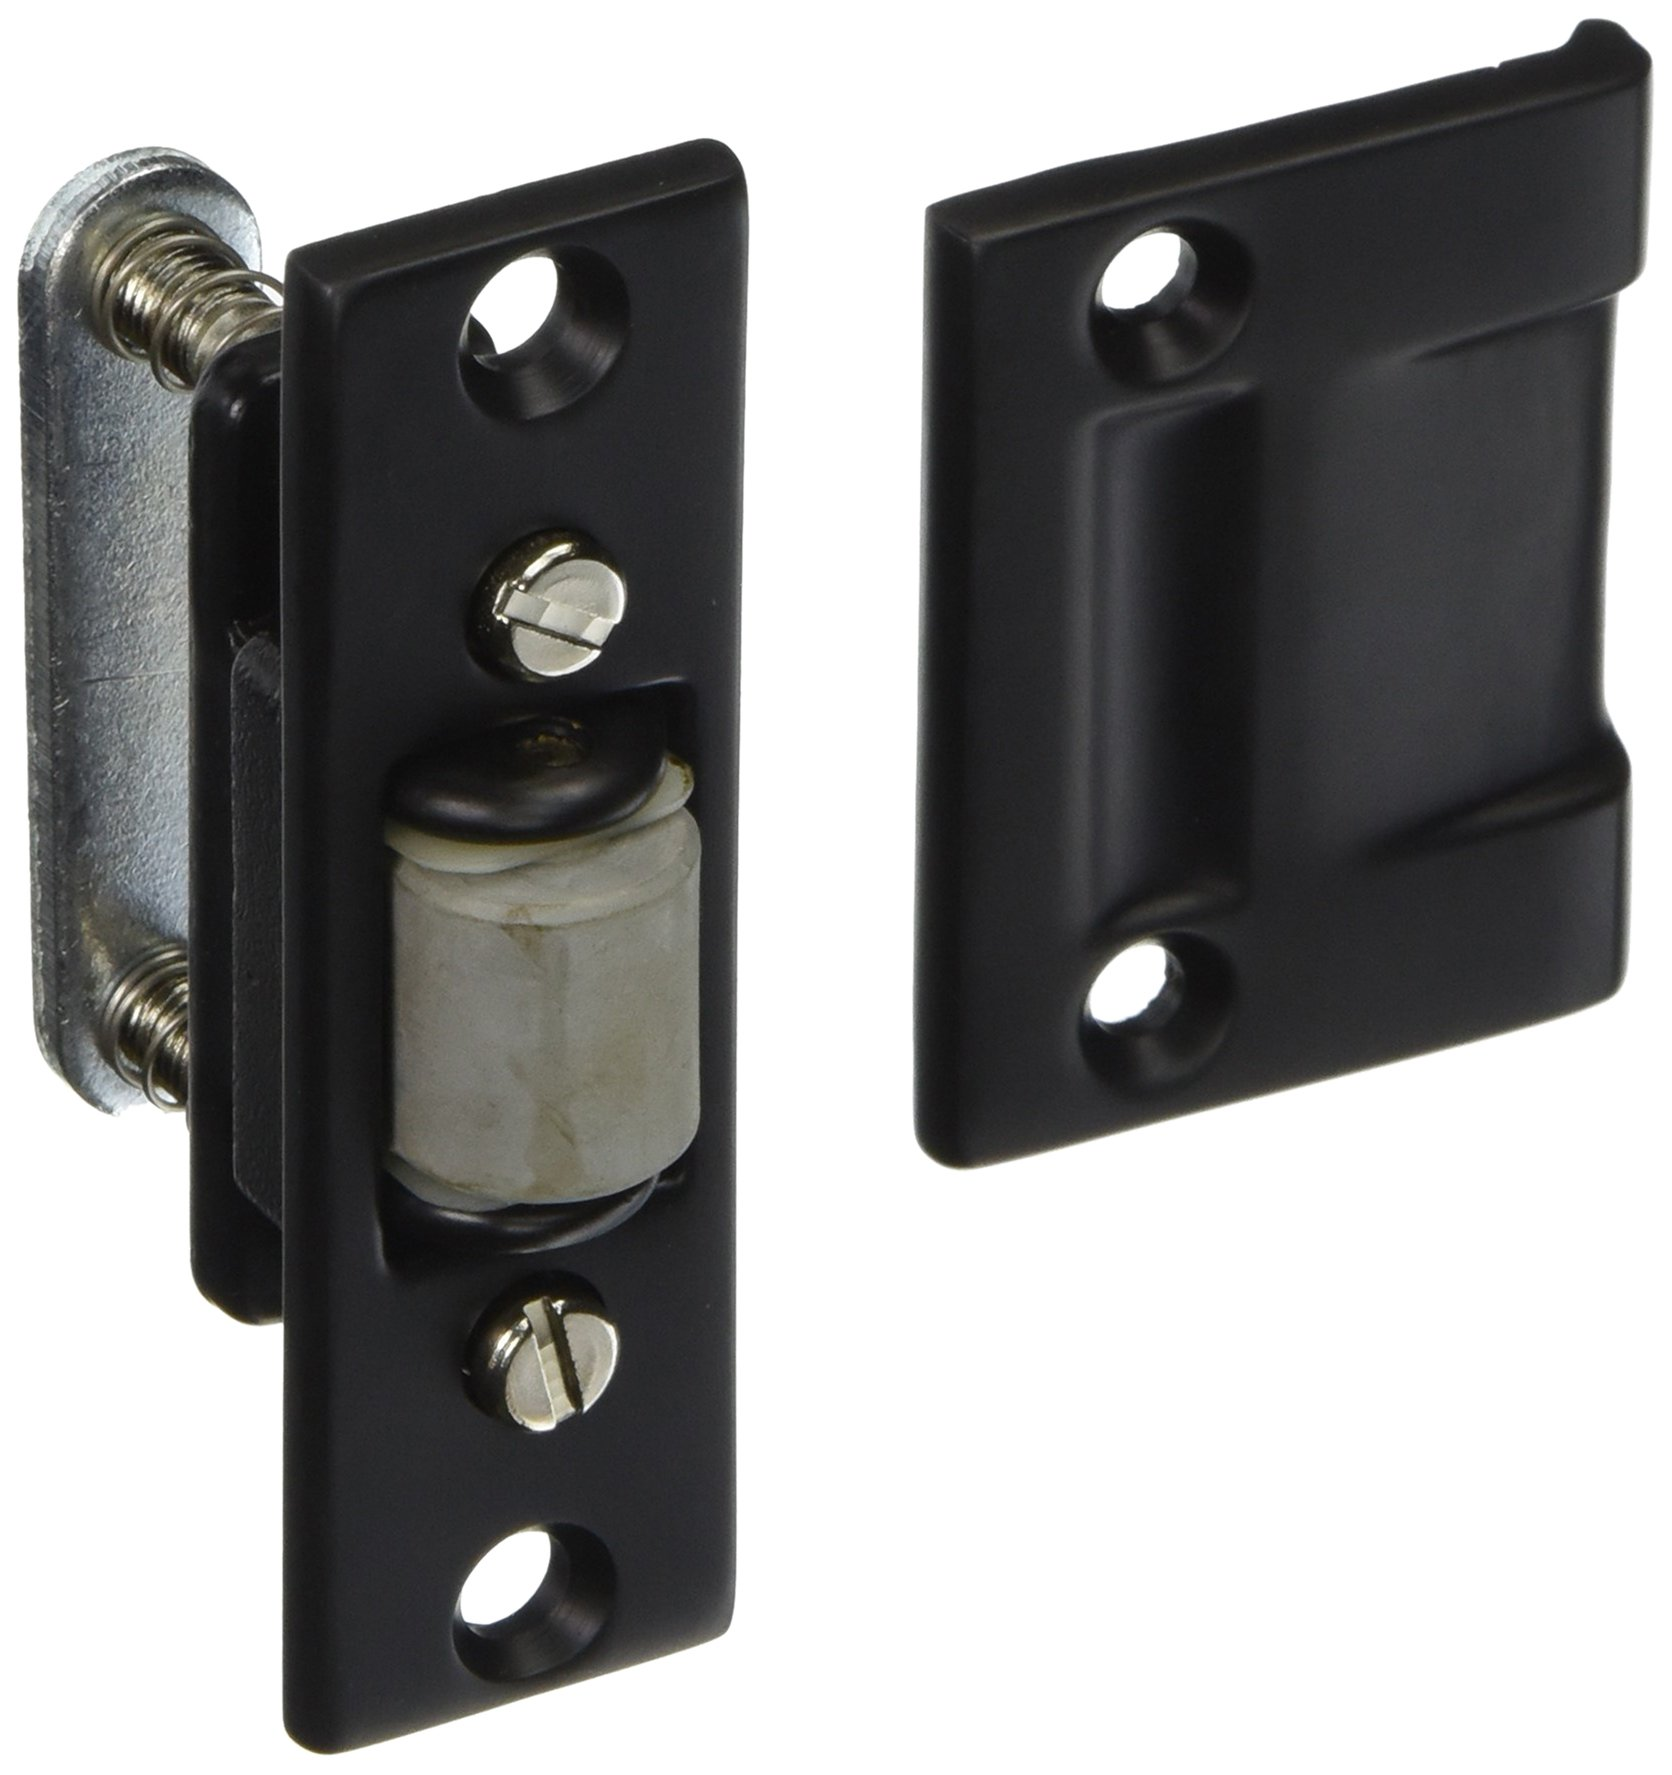 Baldwin 0430102 Roller Latch, Oil Rubbed Bronze